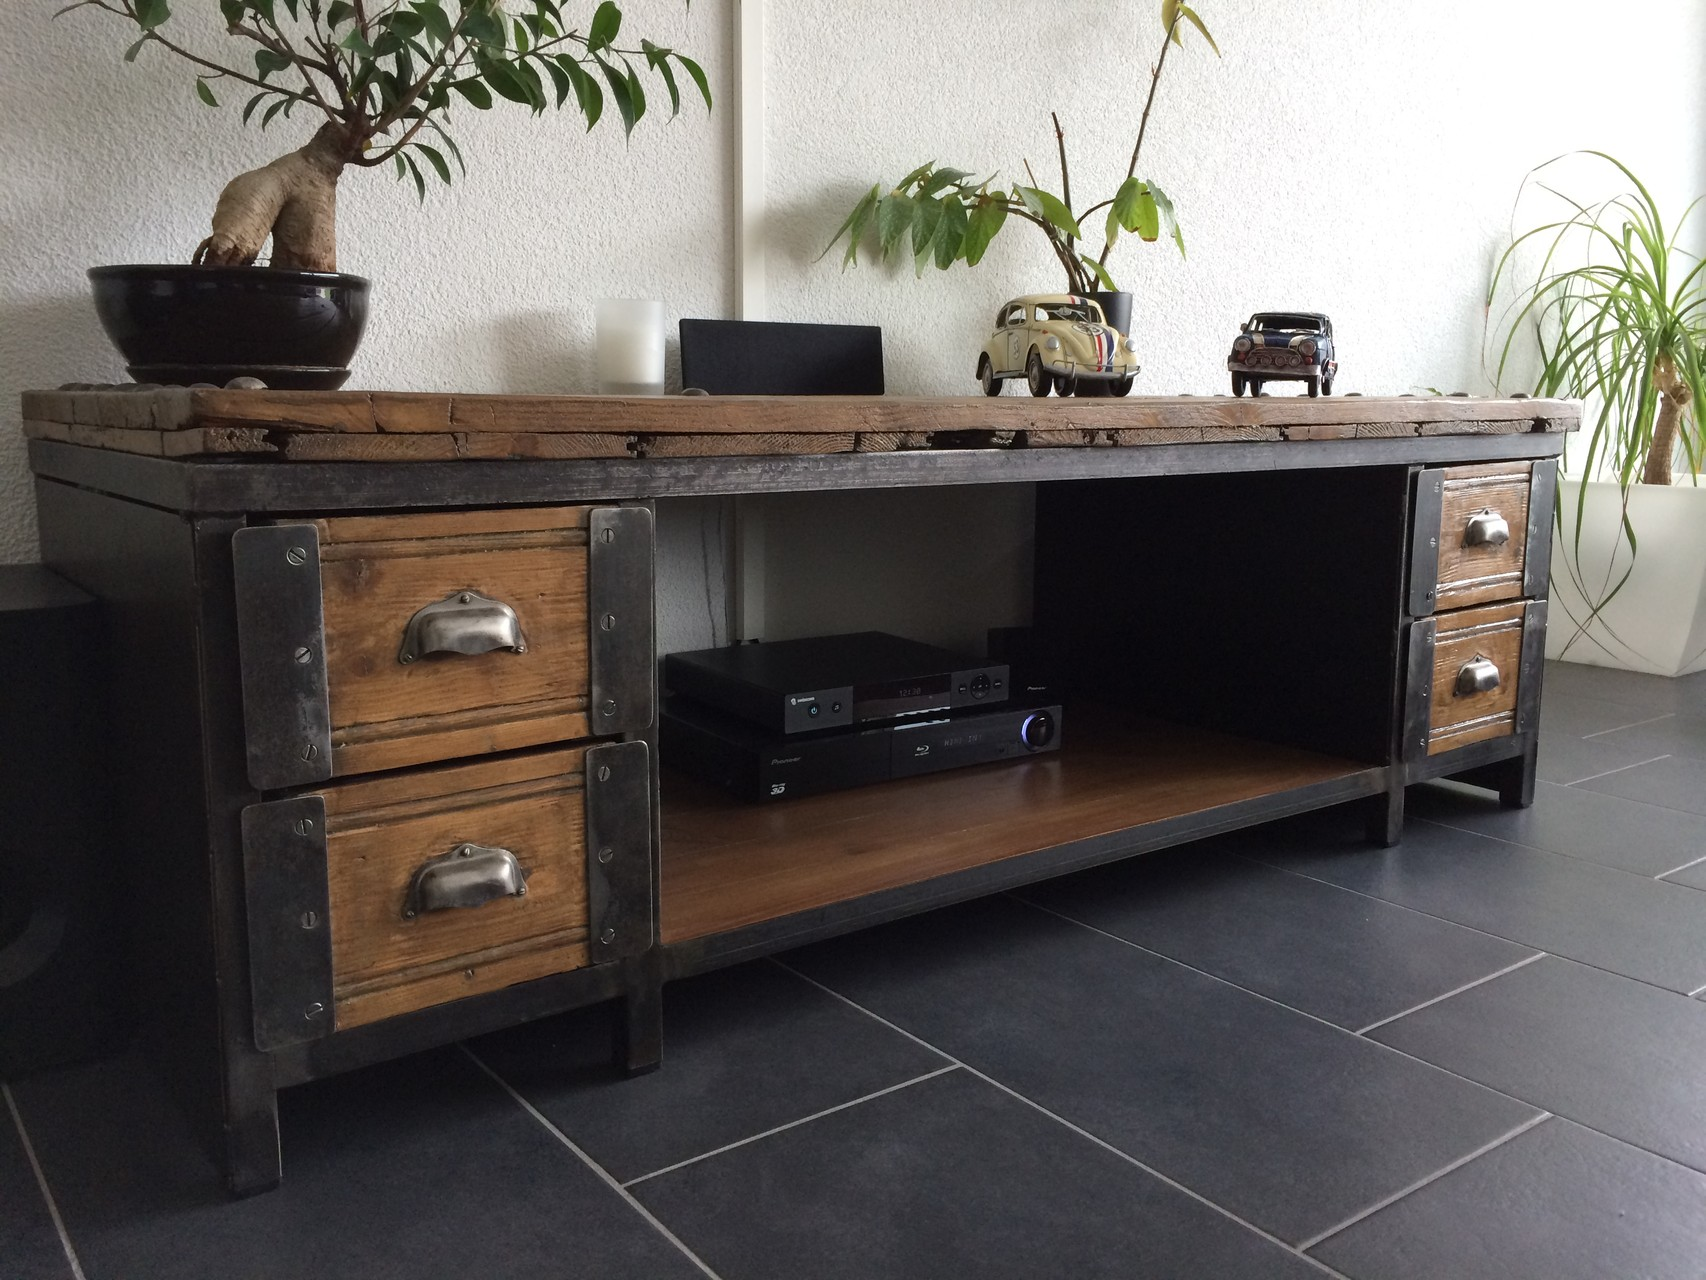 Table basse meuble tv industriel atelier vintage for Meuble industriel